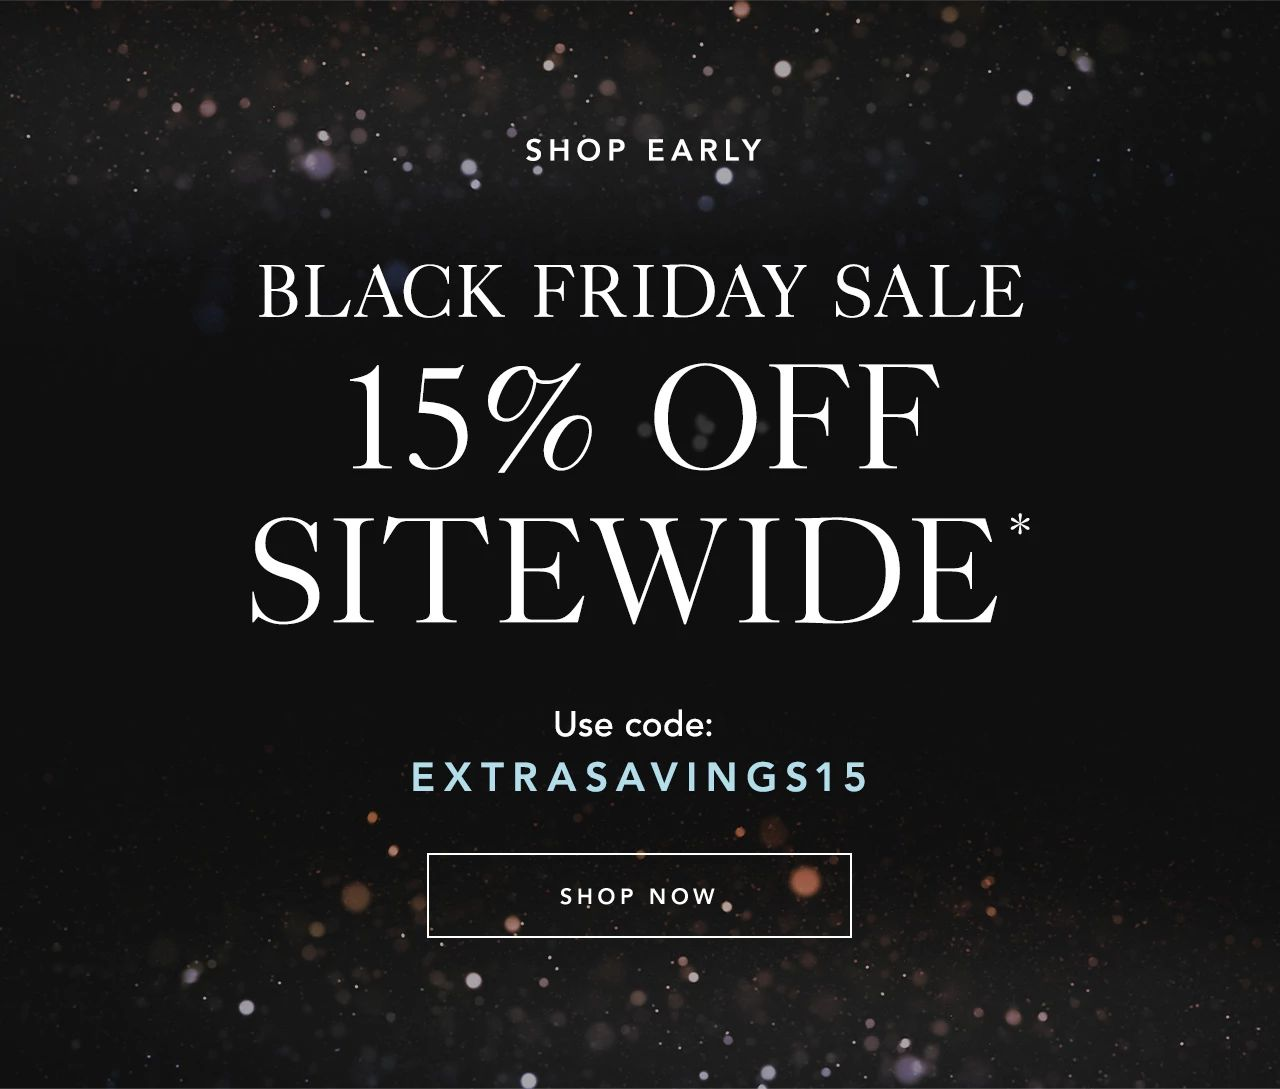 Black Friday Sale: Extra 15% off sitewide.* Use code: EXTRASAVINGS15